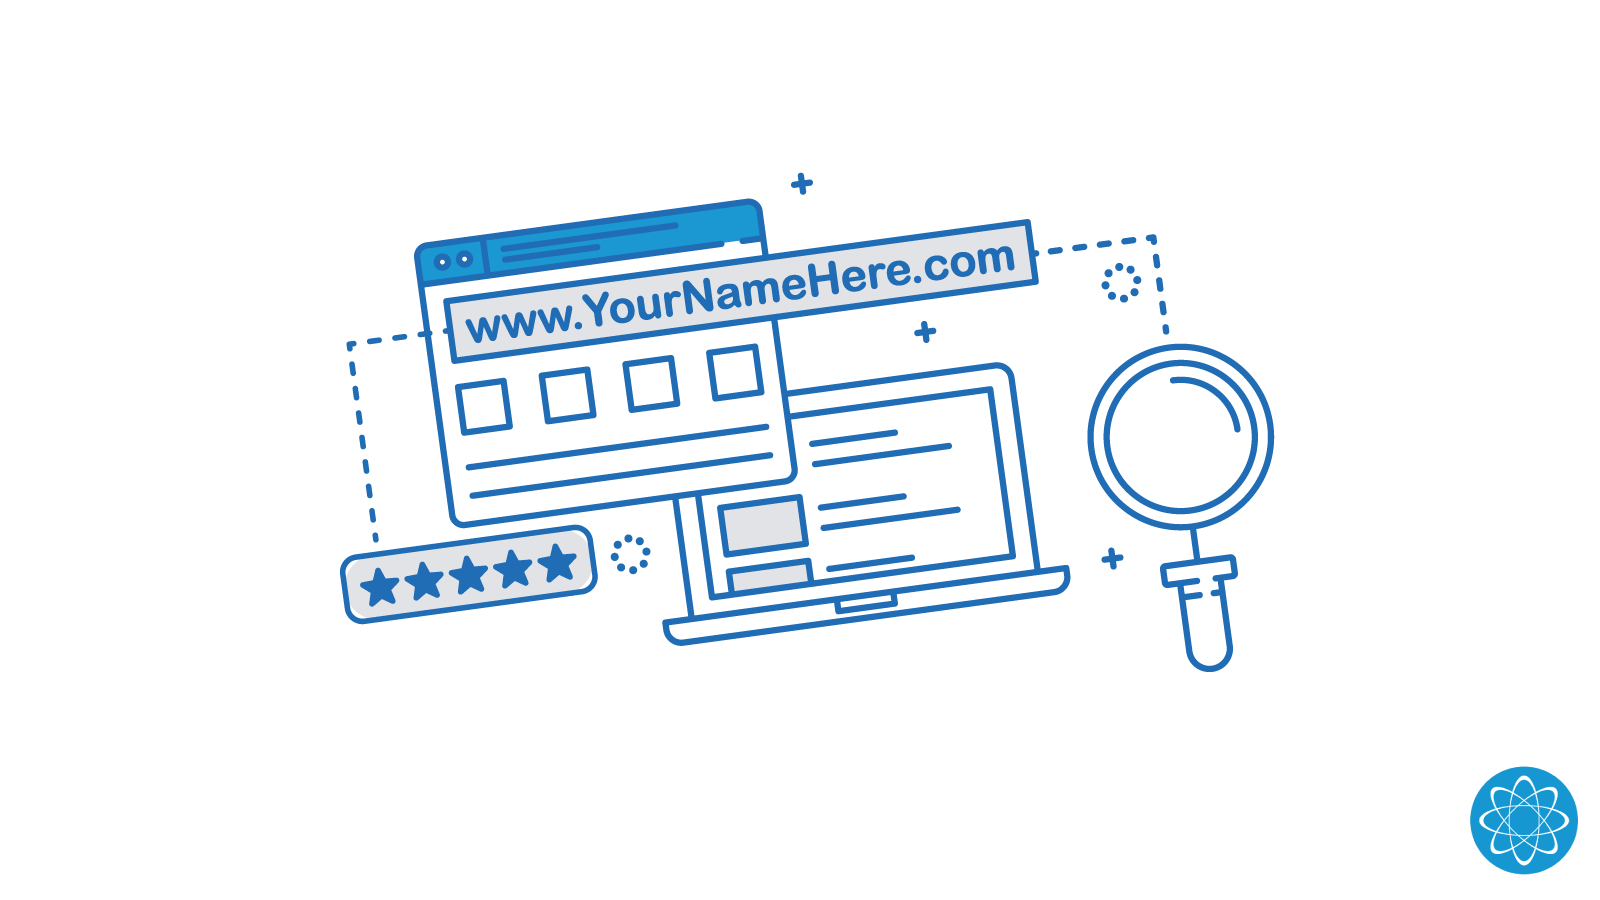 Blue Illustration of a Laptop and Website depicting the URL search and selection